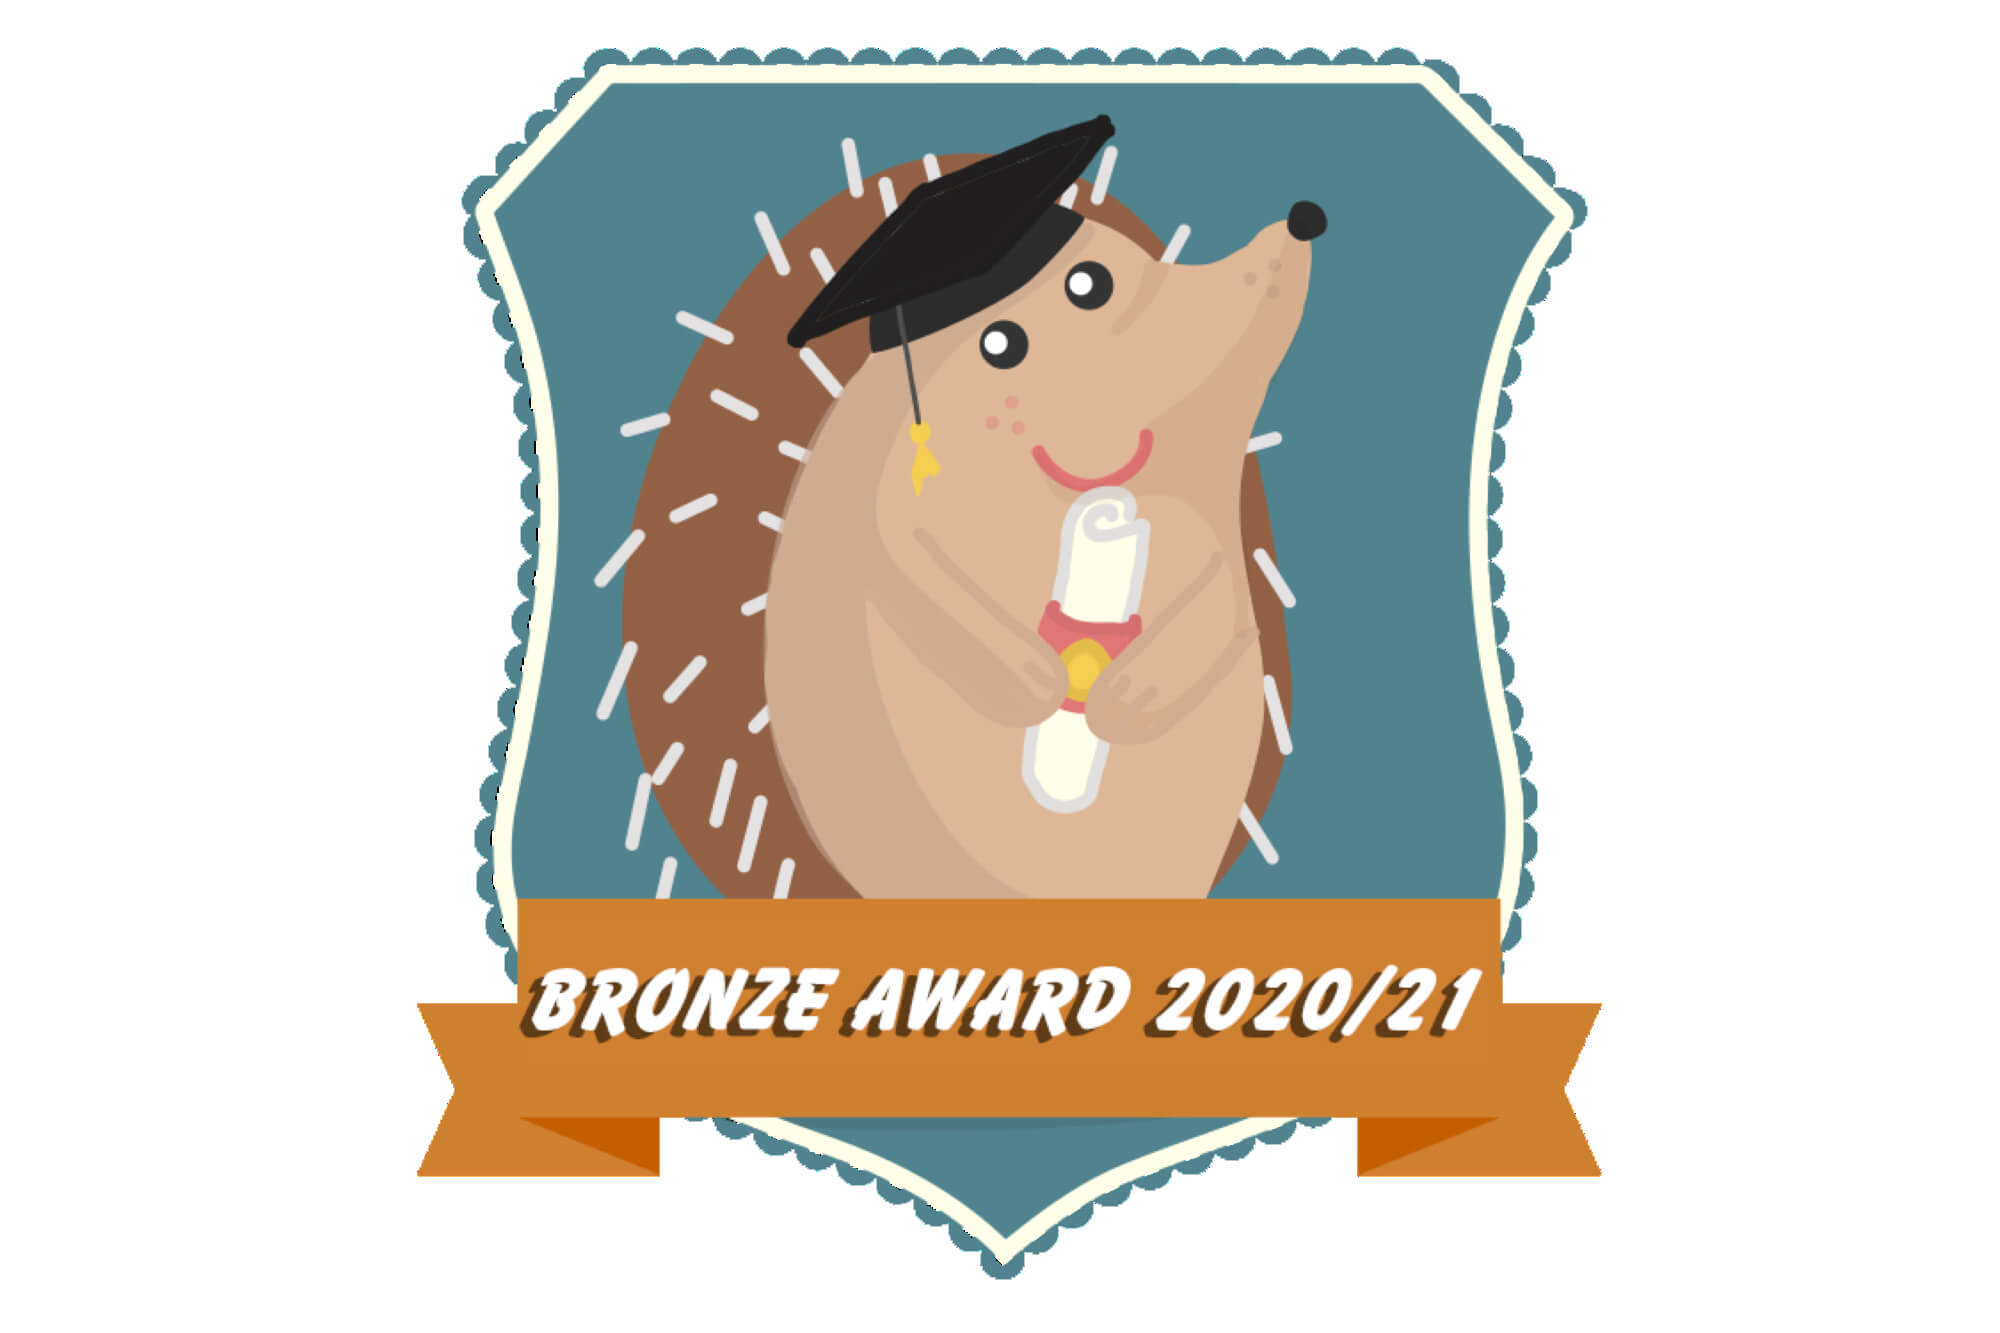 A cartoon hedgehog holds a certificate wearing a graduation cap. Text reads 'bronze award 2020/21.'